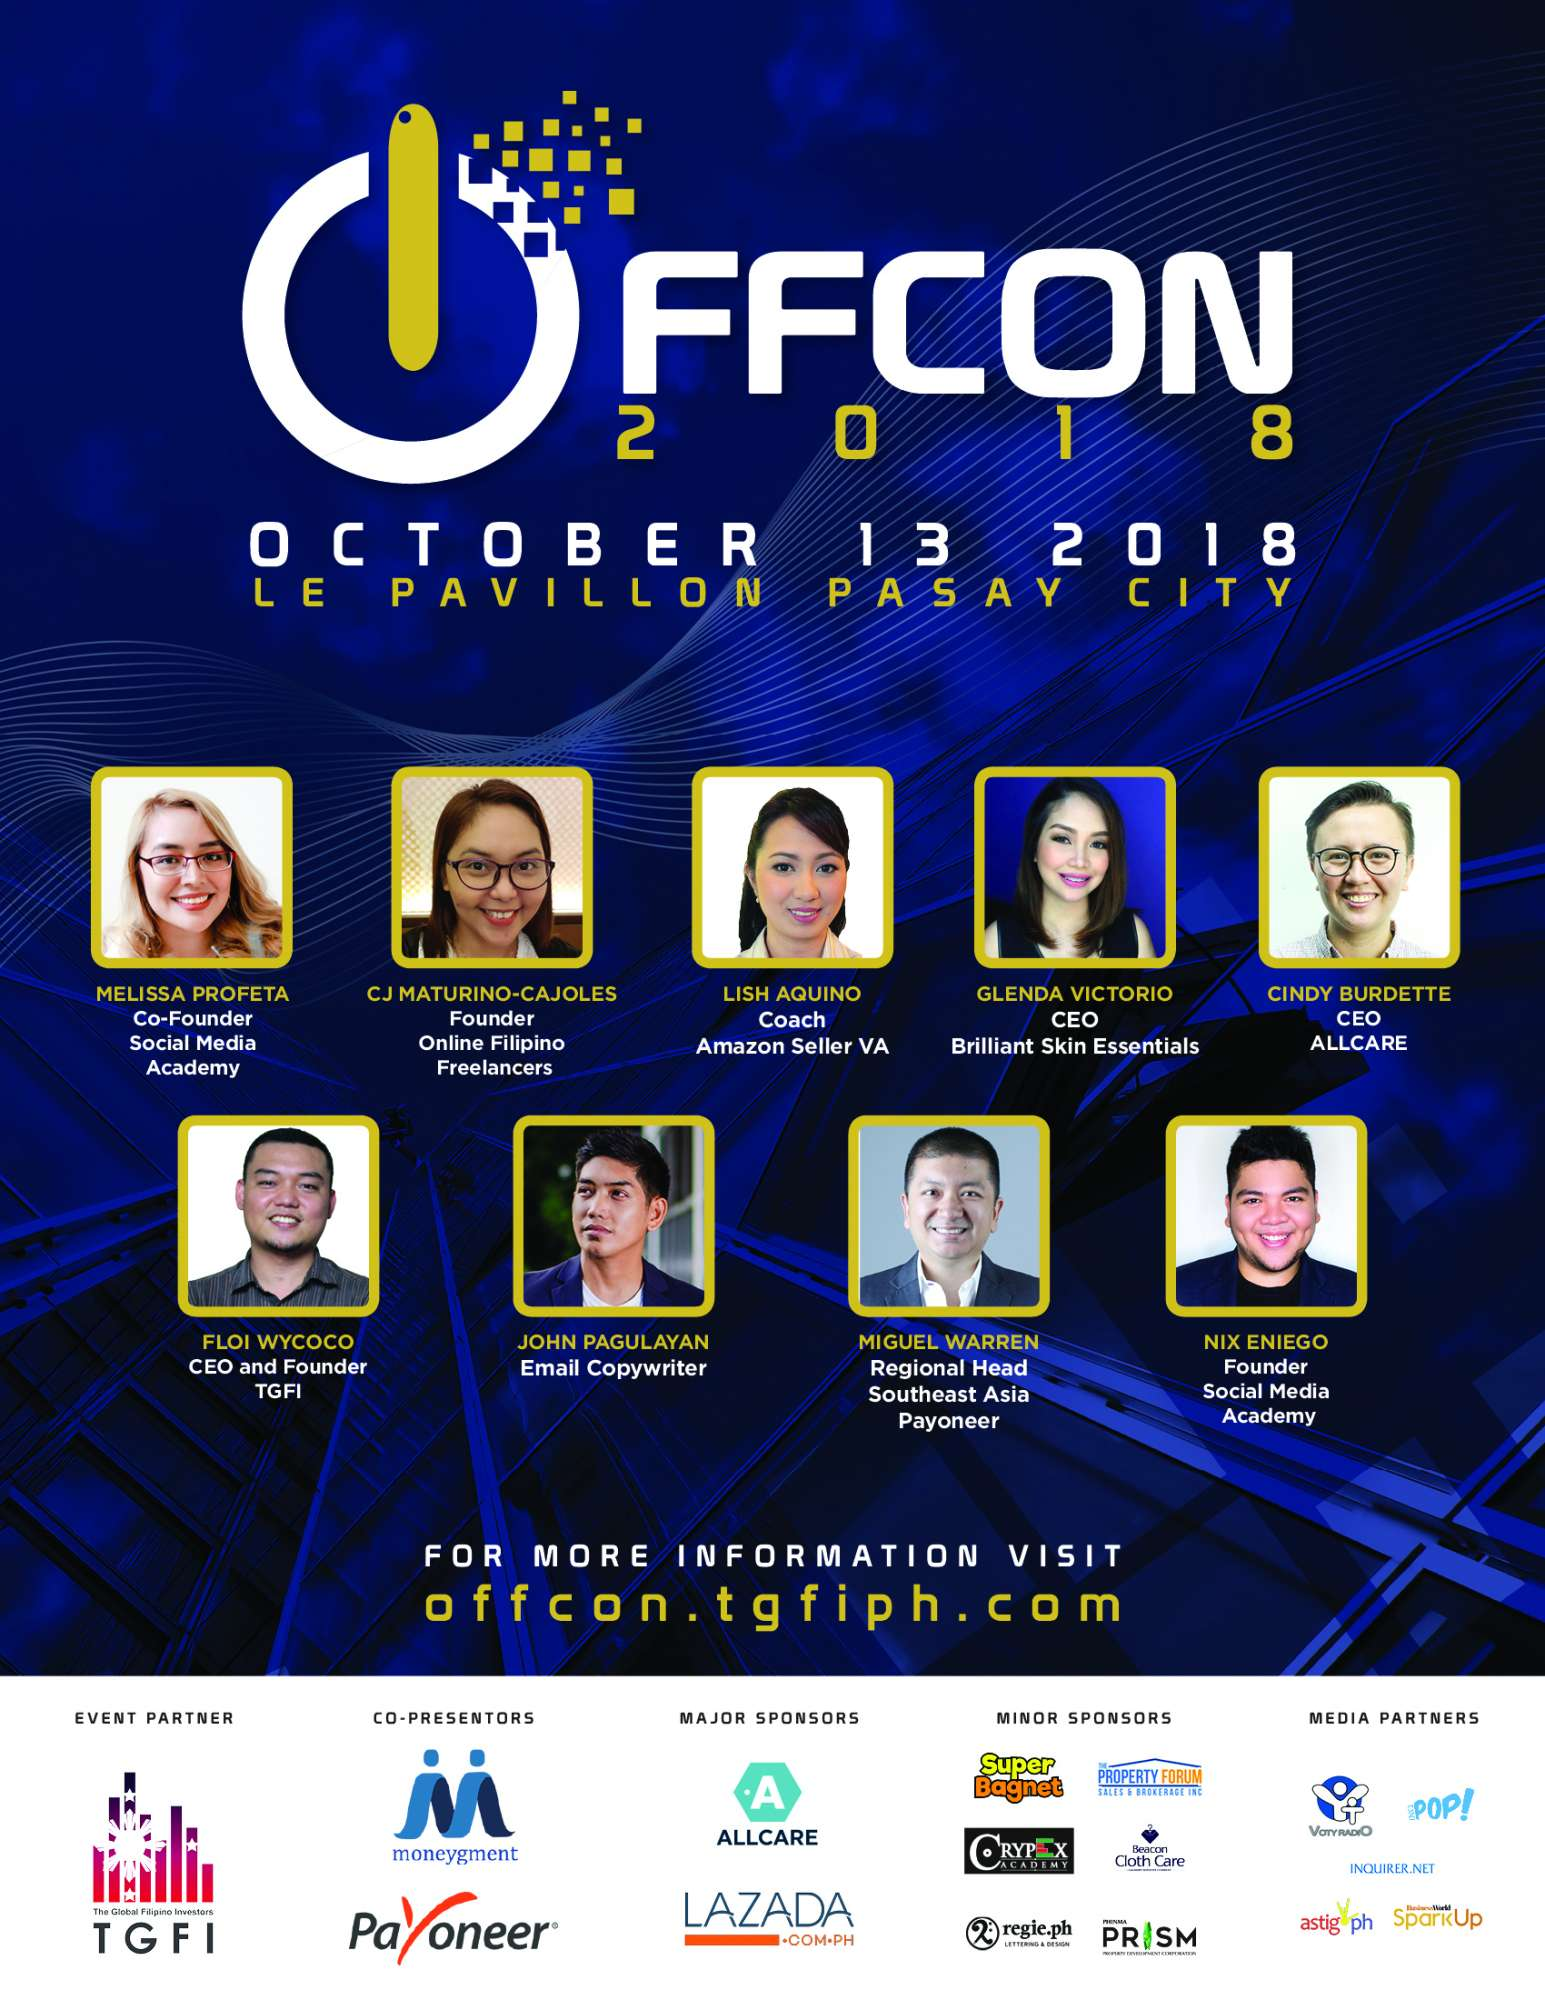 Offcon speakers